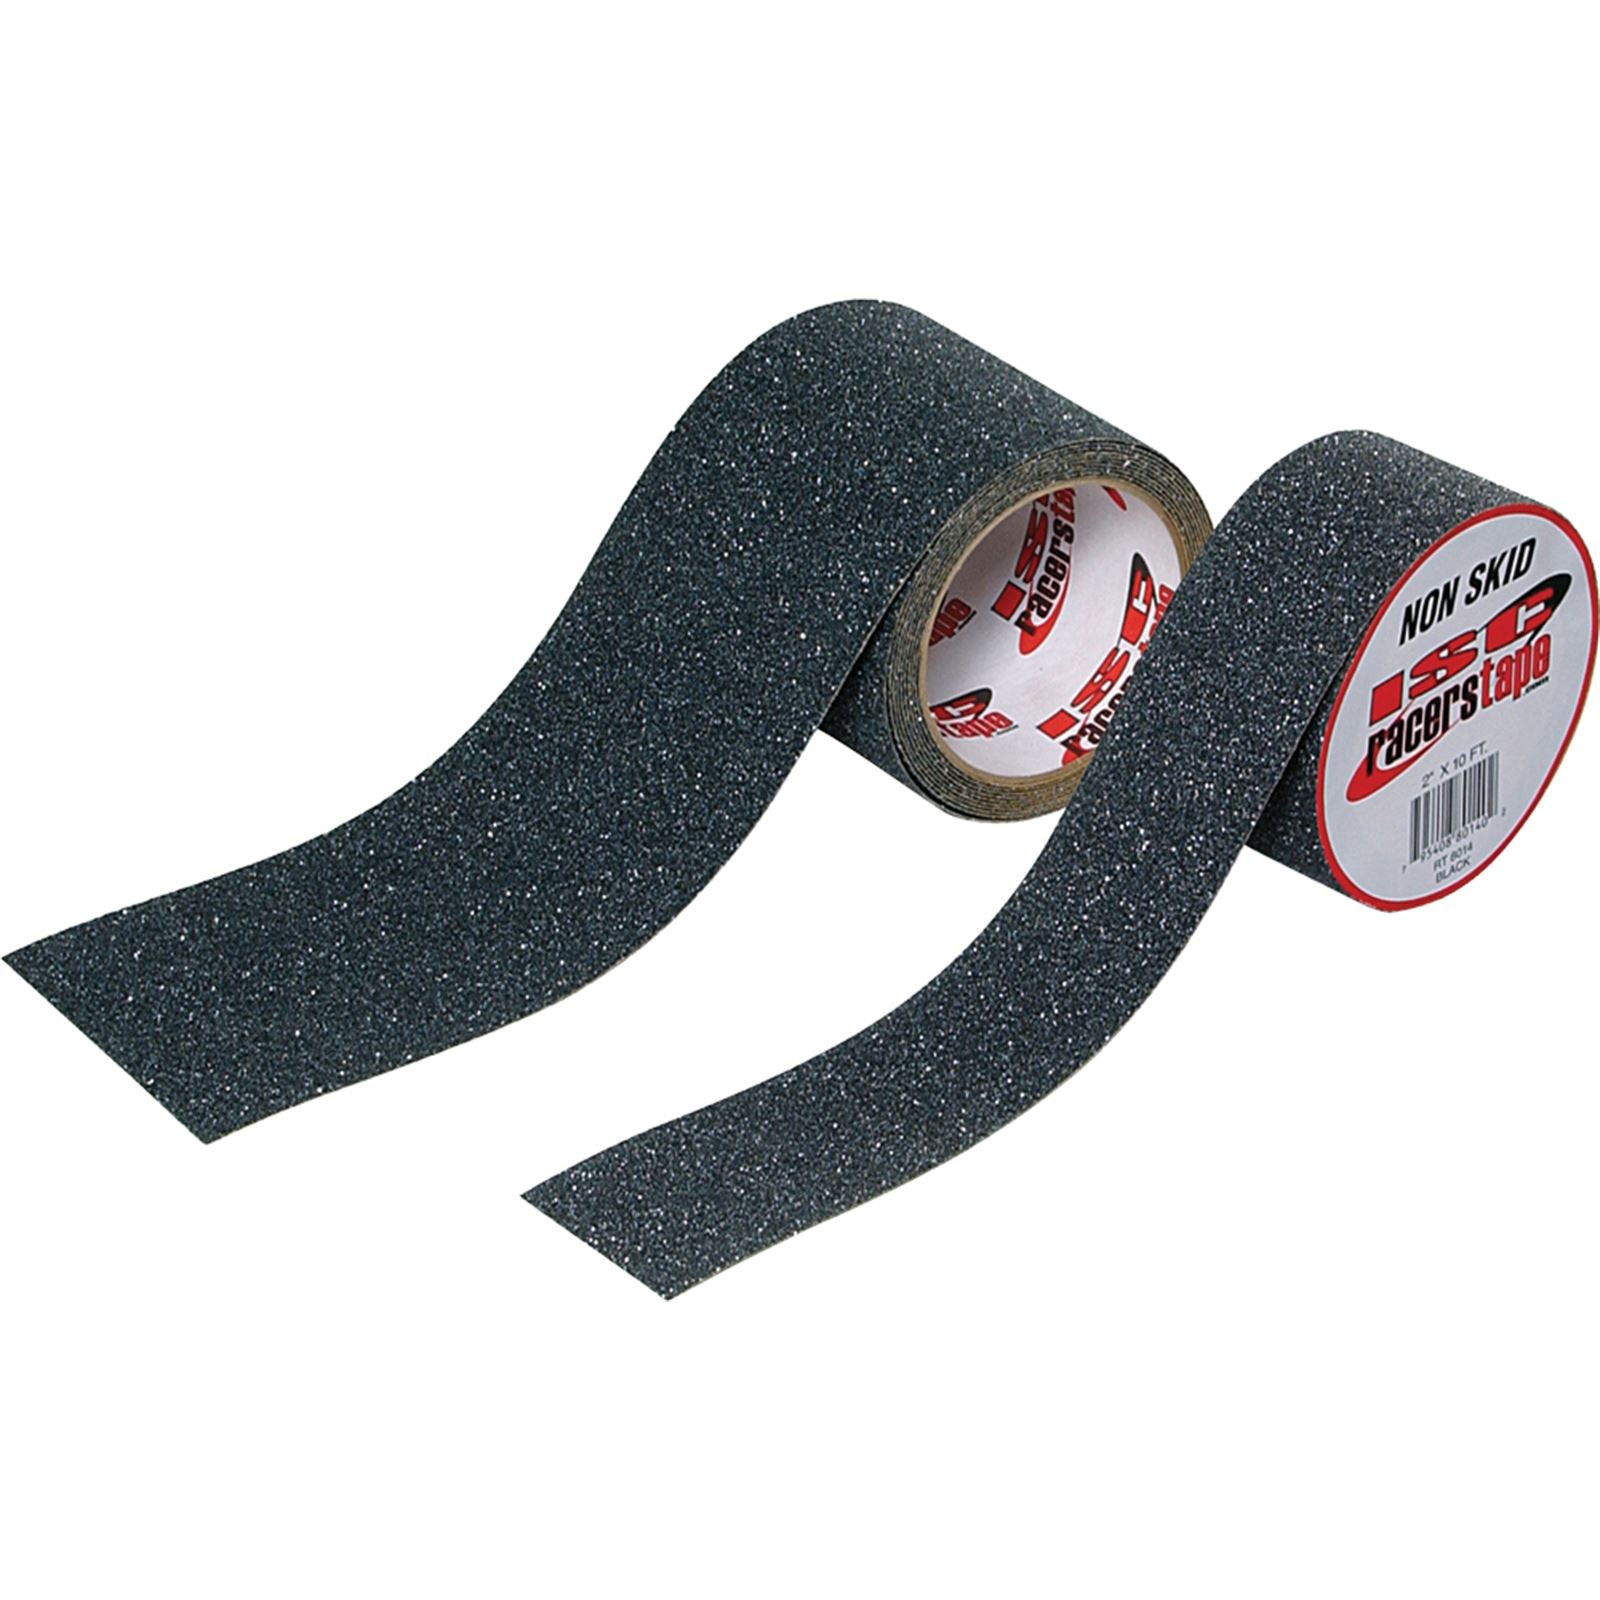 ISC Rubberized Non-Skid Tape